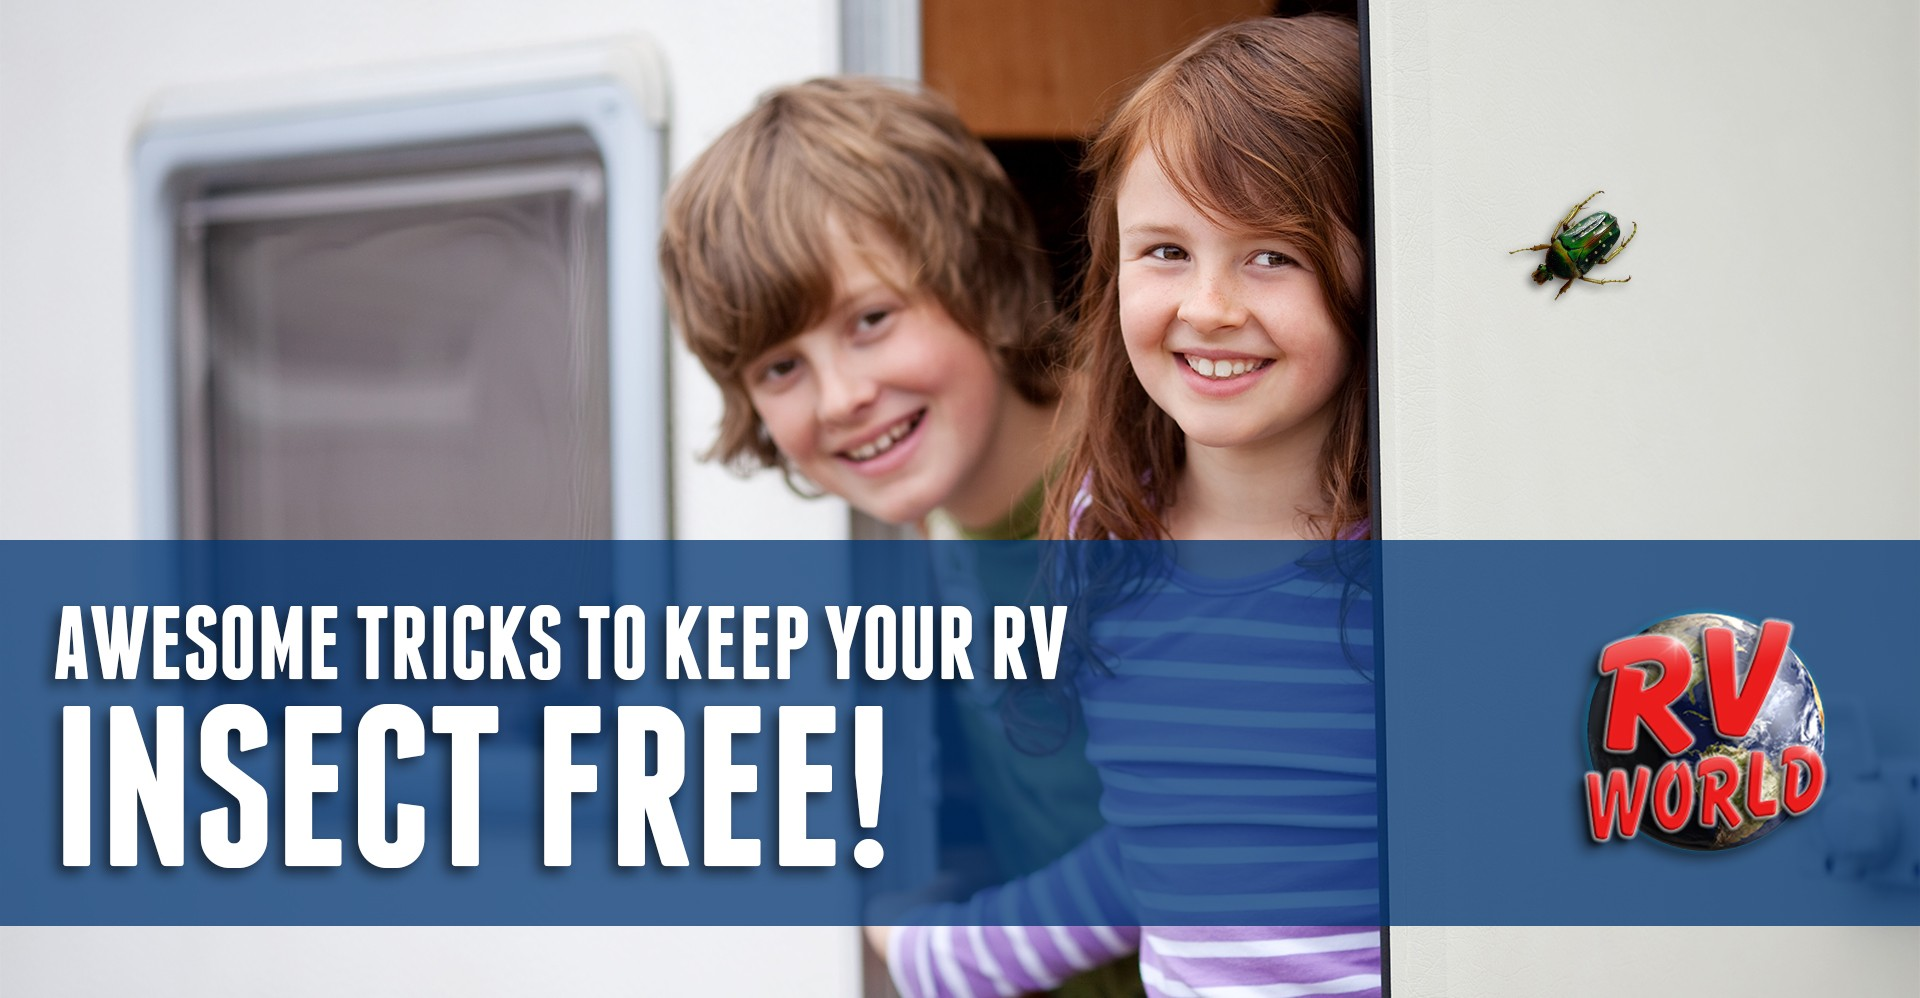 Awesome Tricks To Keep Your RV Insect Free!  RV World Blog